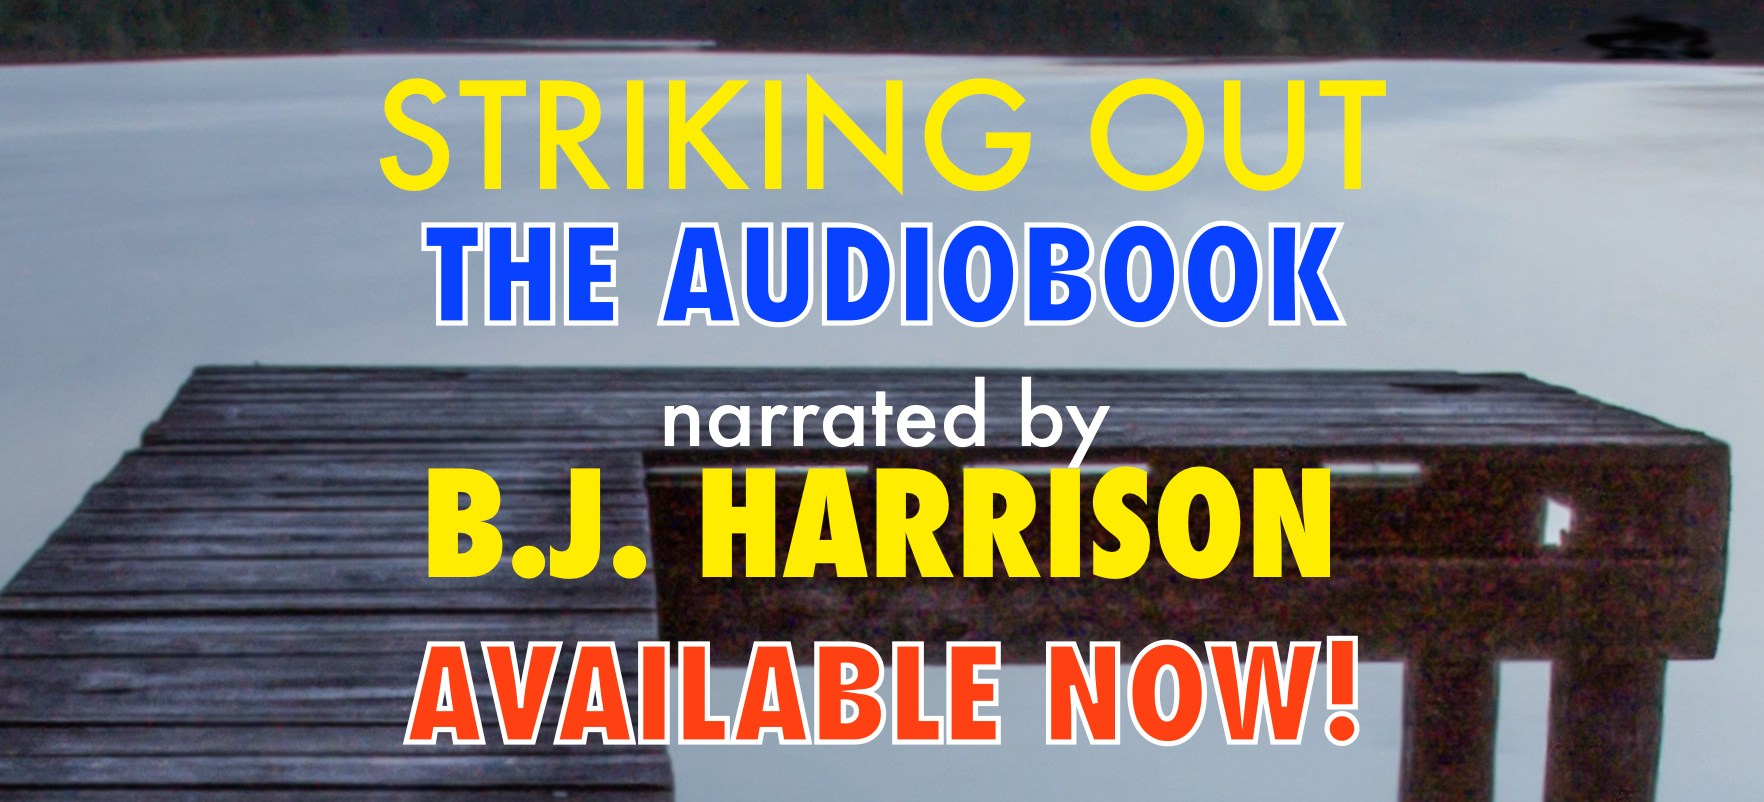 New website - audiobook button.jpg